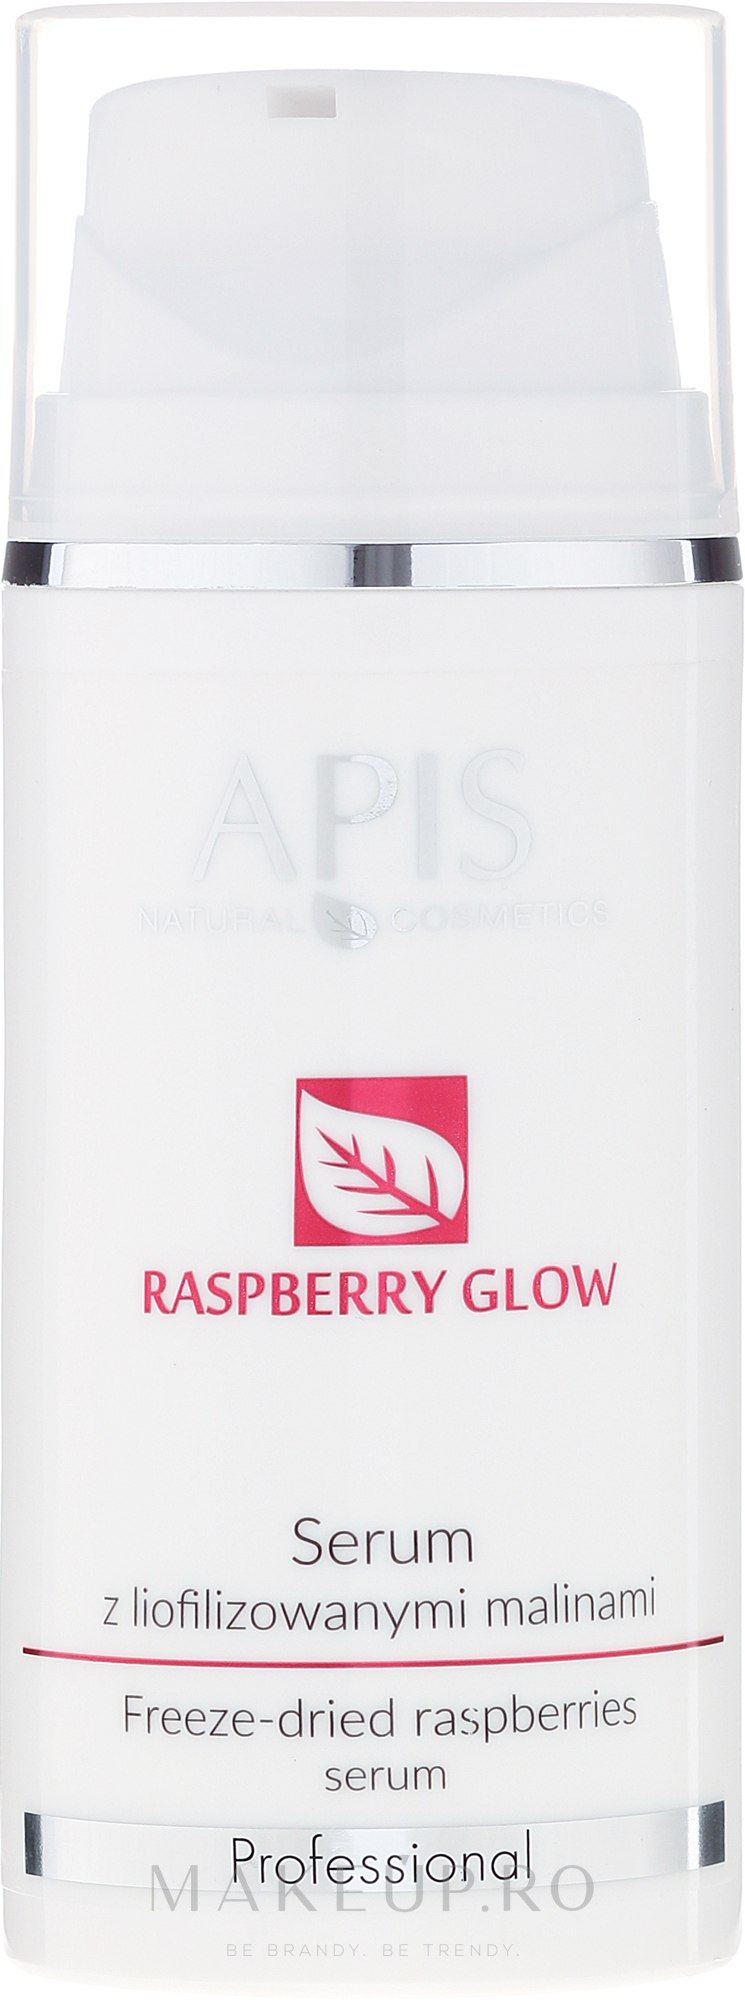 Ser de față cu zmeură uscată - APIS Professional Raspberry Glow — Imagine 100 ml